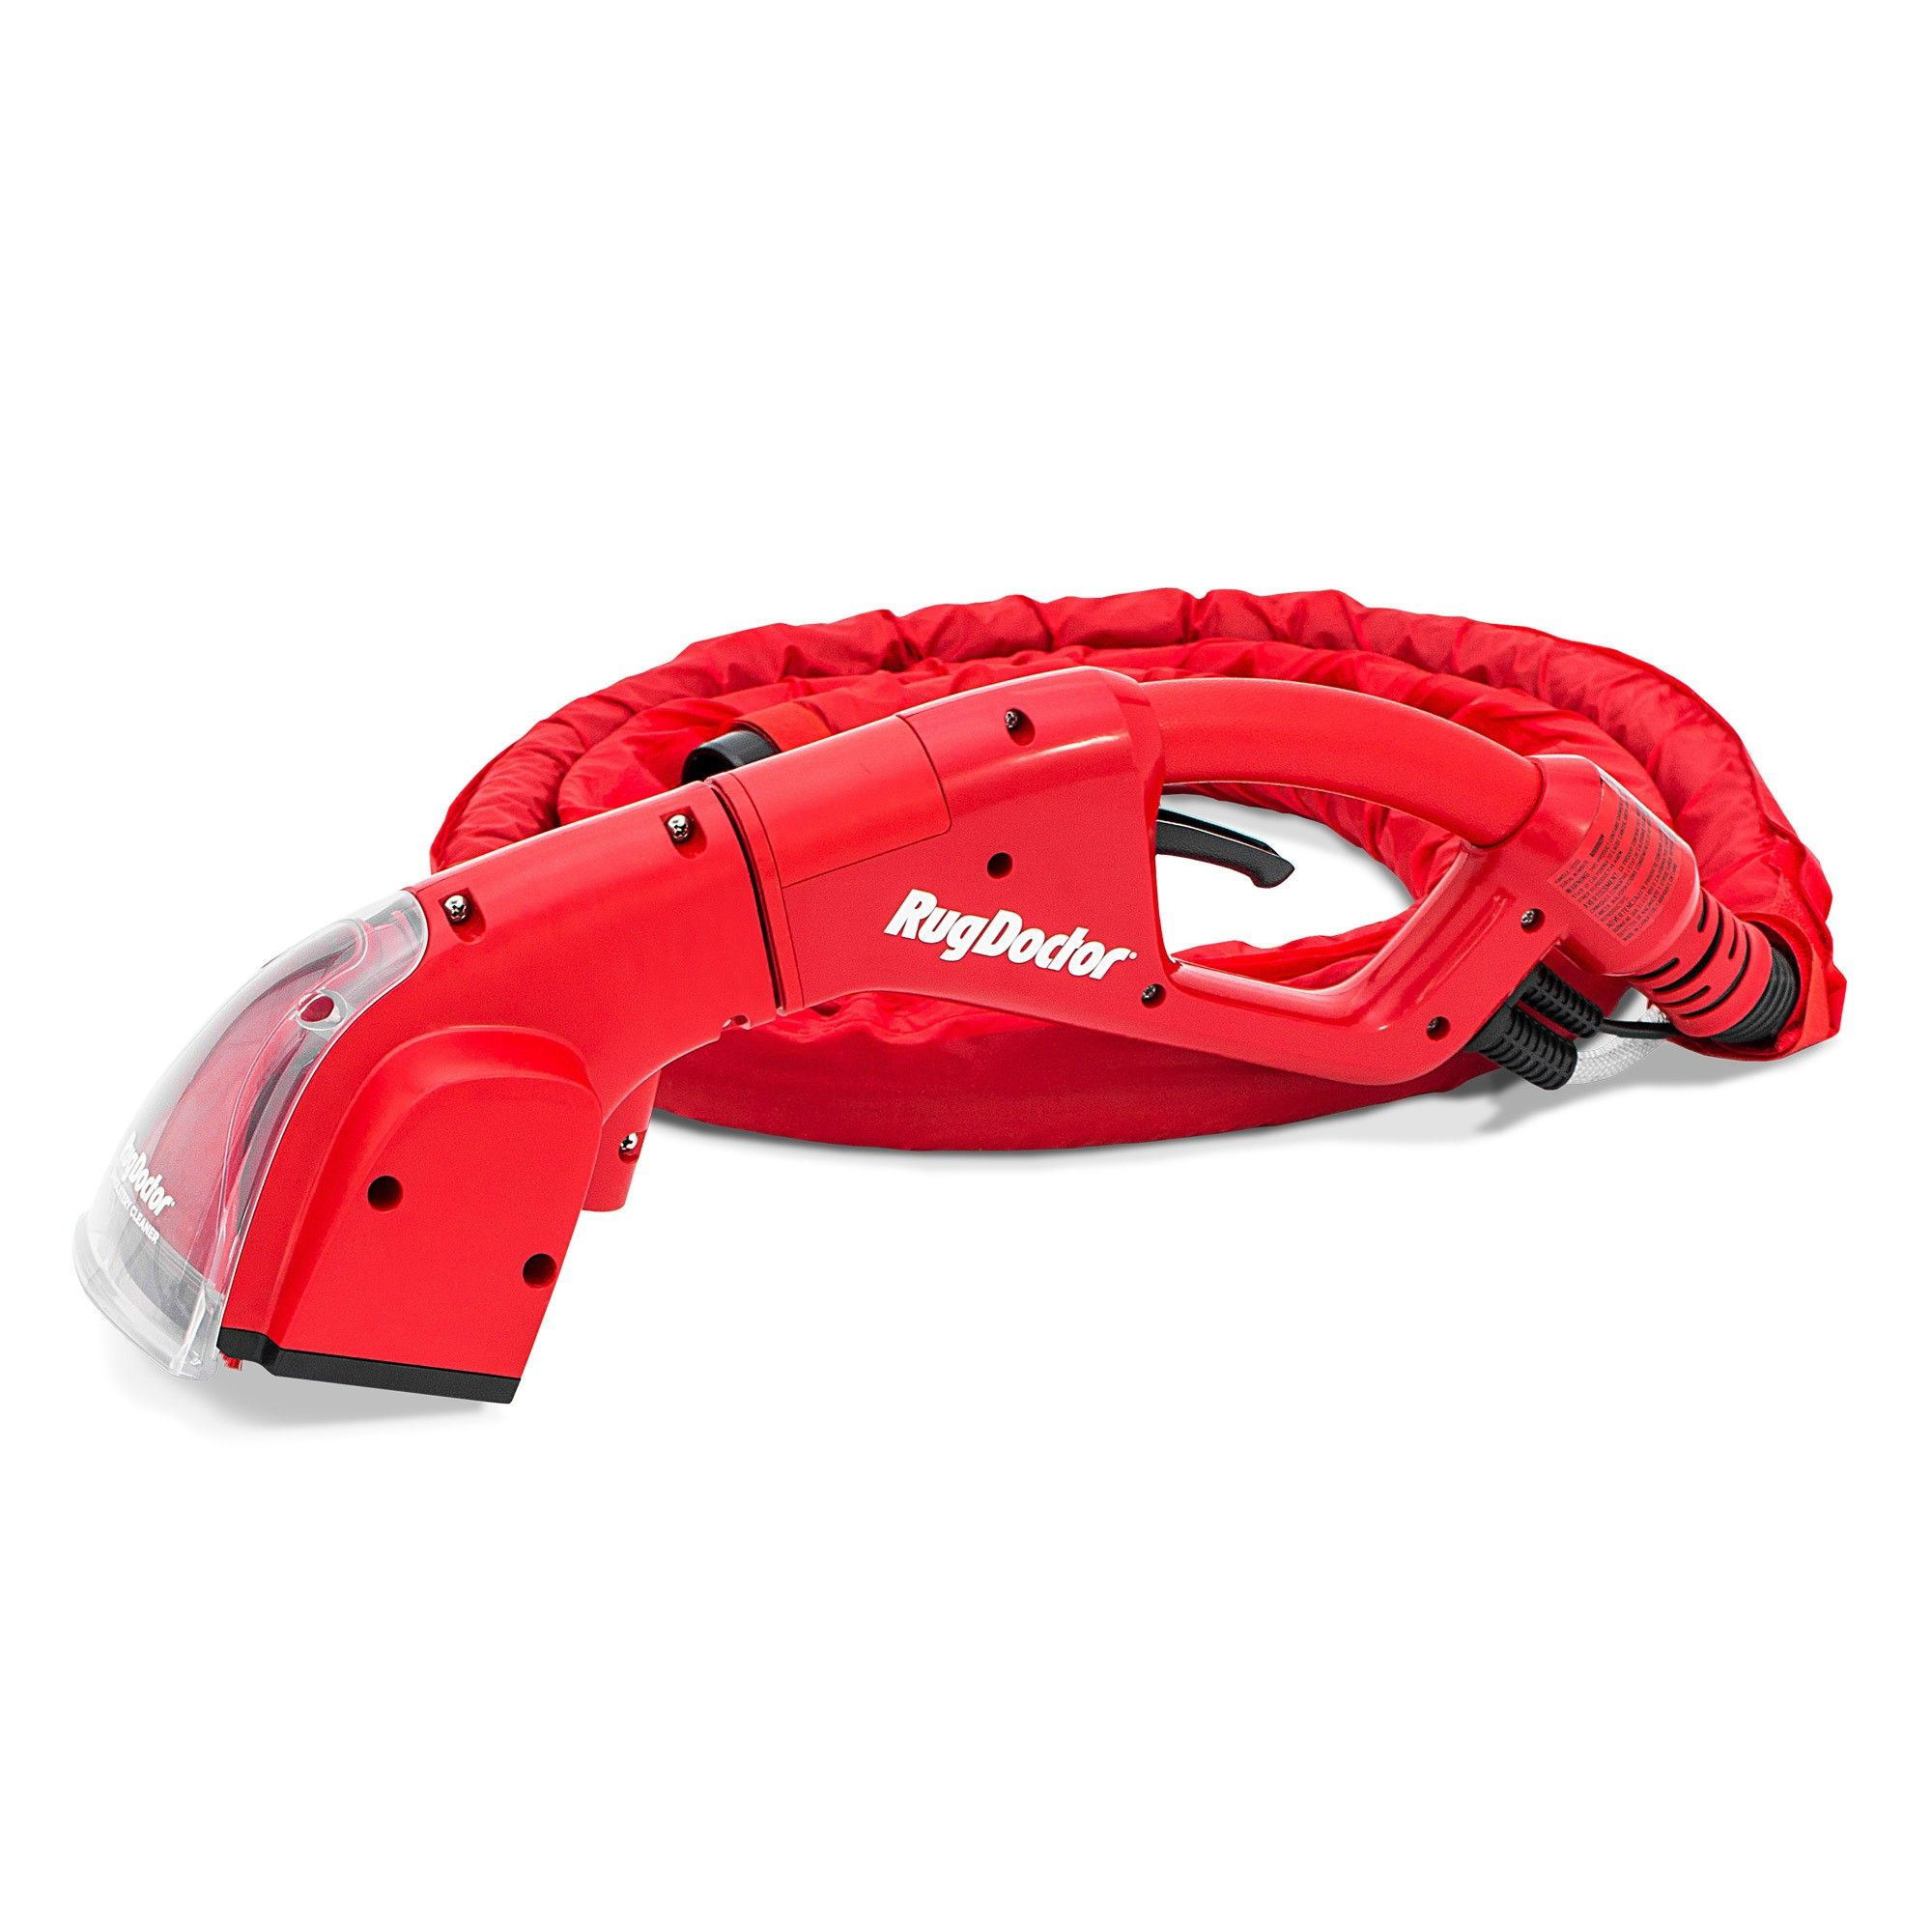 Rug Doctor Pro Deep Upholstery Tool And Hose Red Rug Doctor